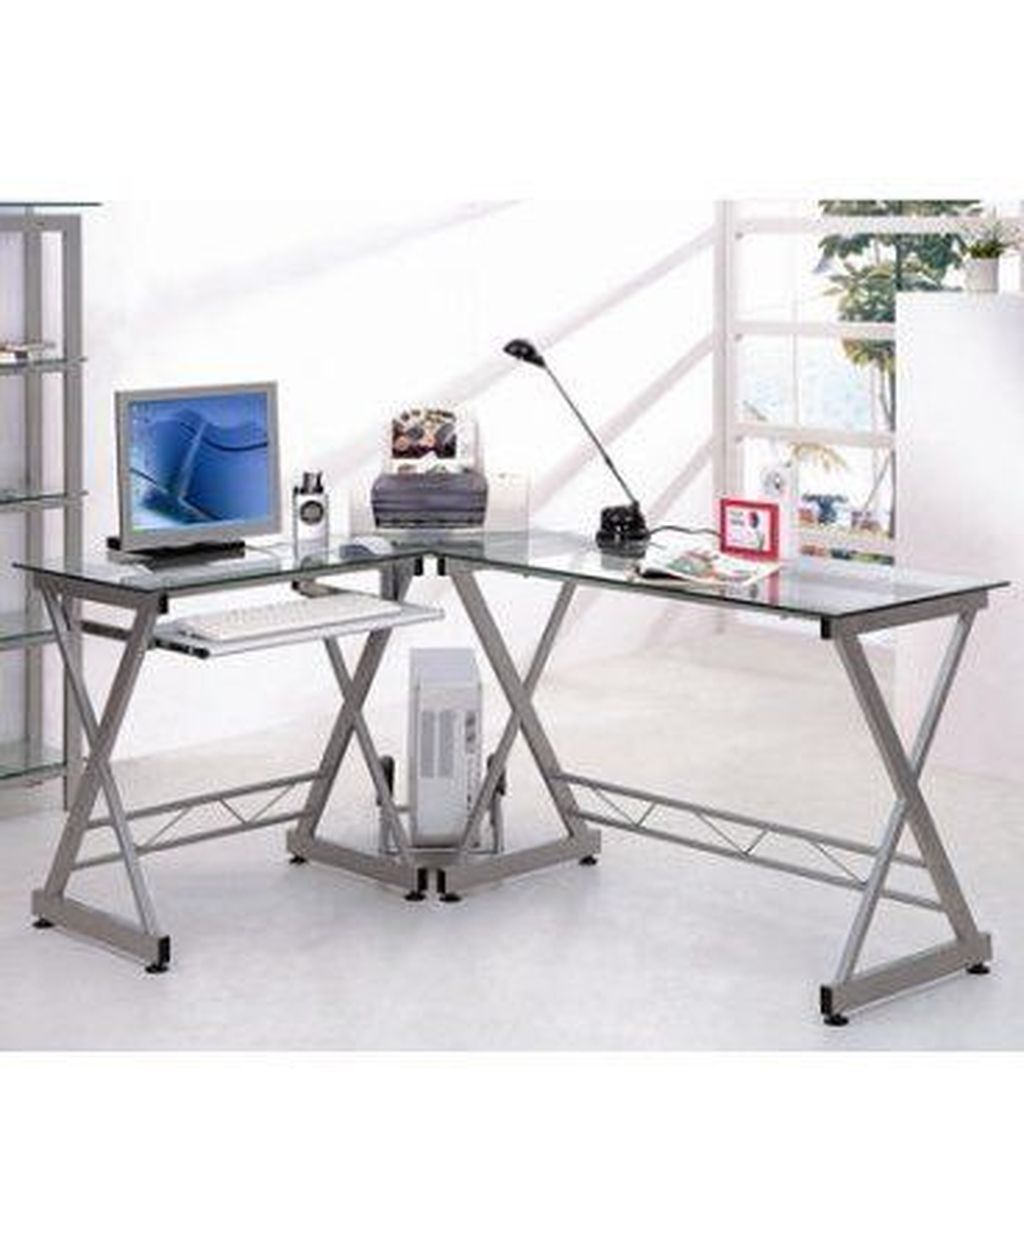 Best Functional Multimedia Table Design Ideas That Will Inspire You 16